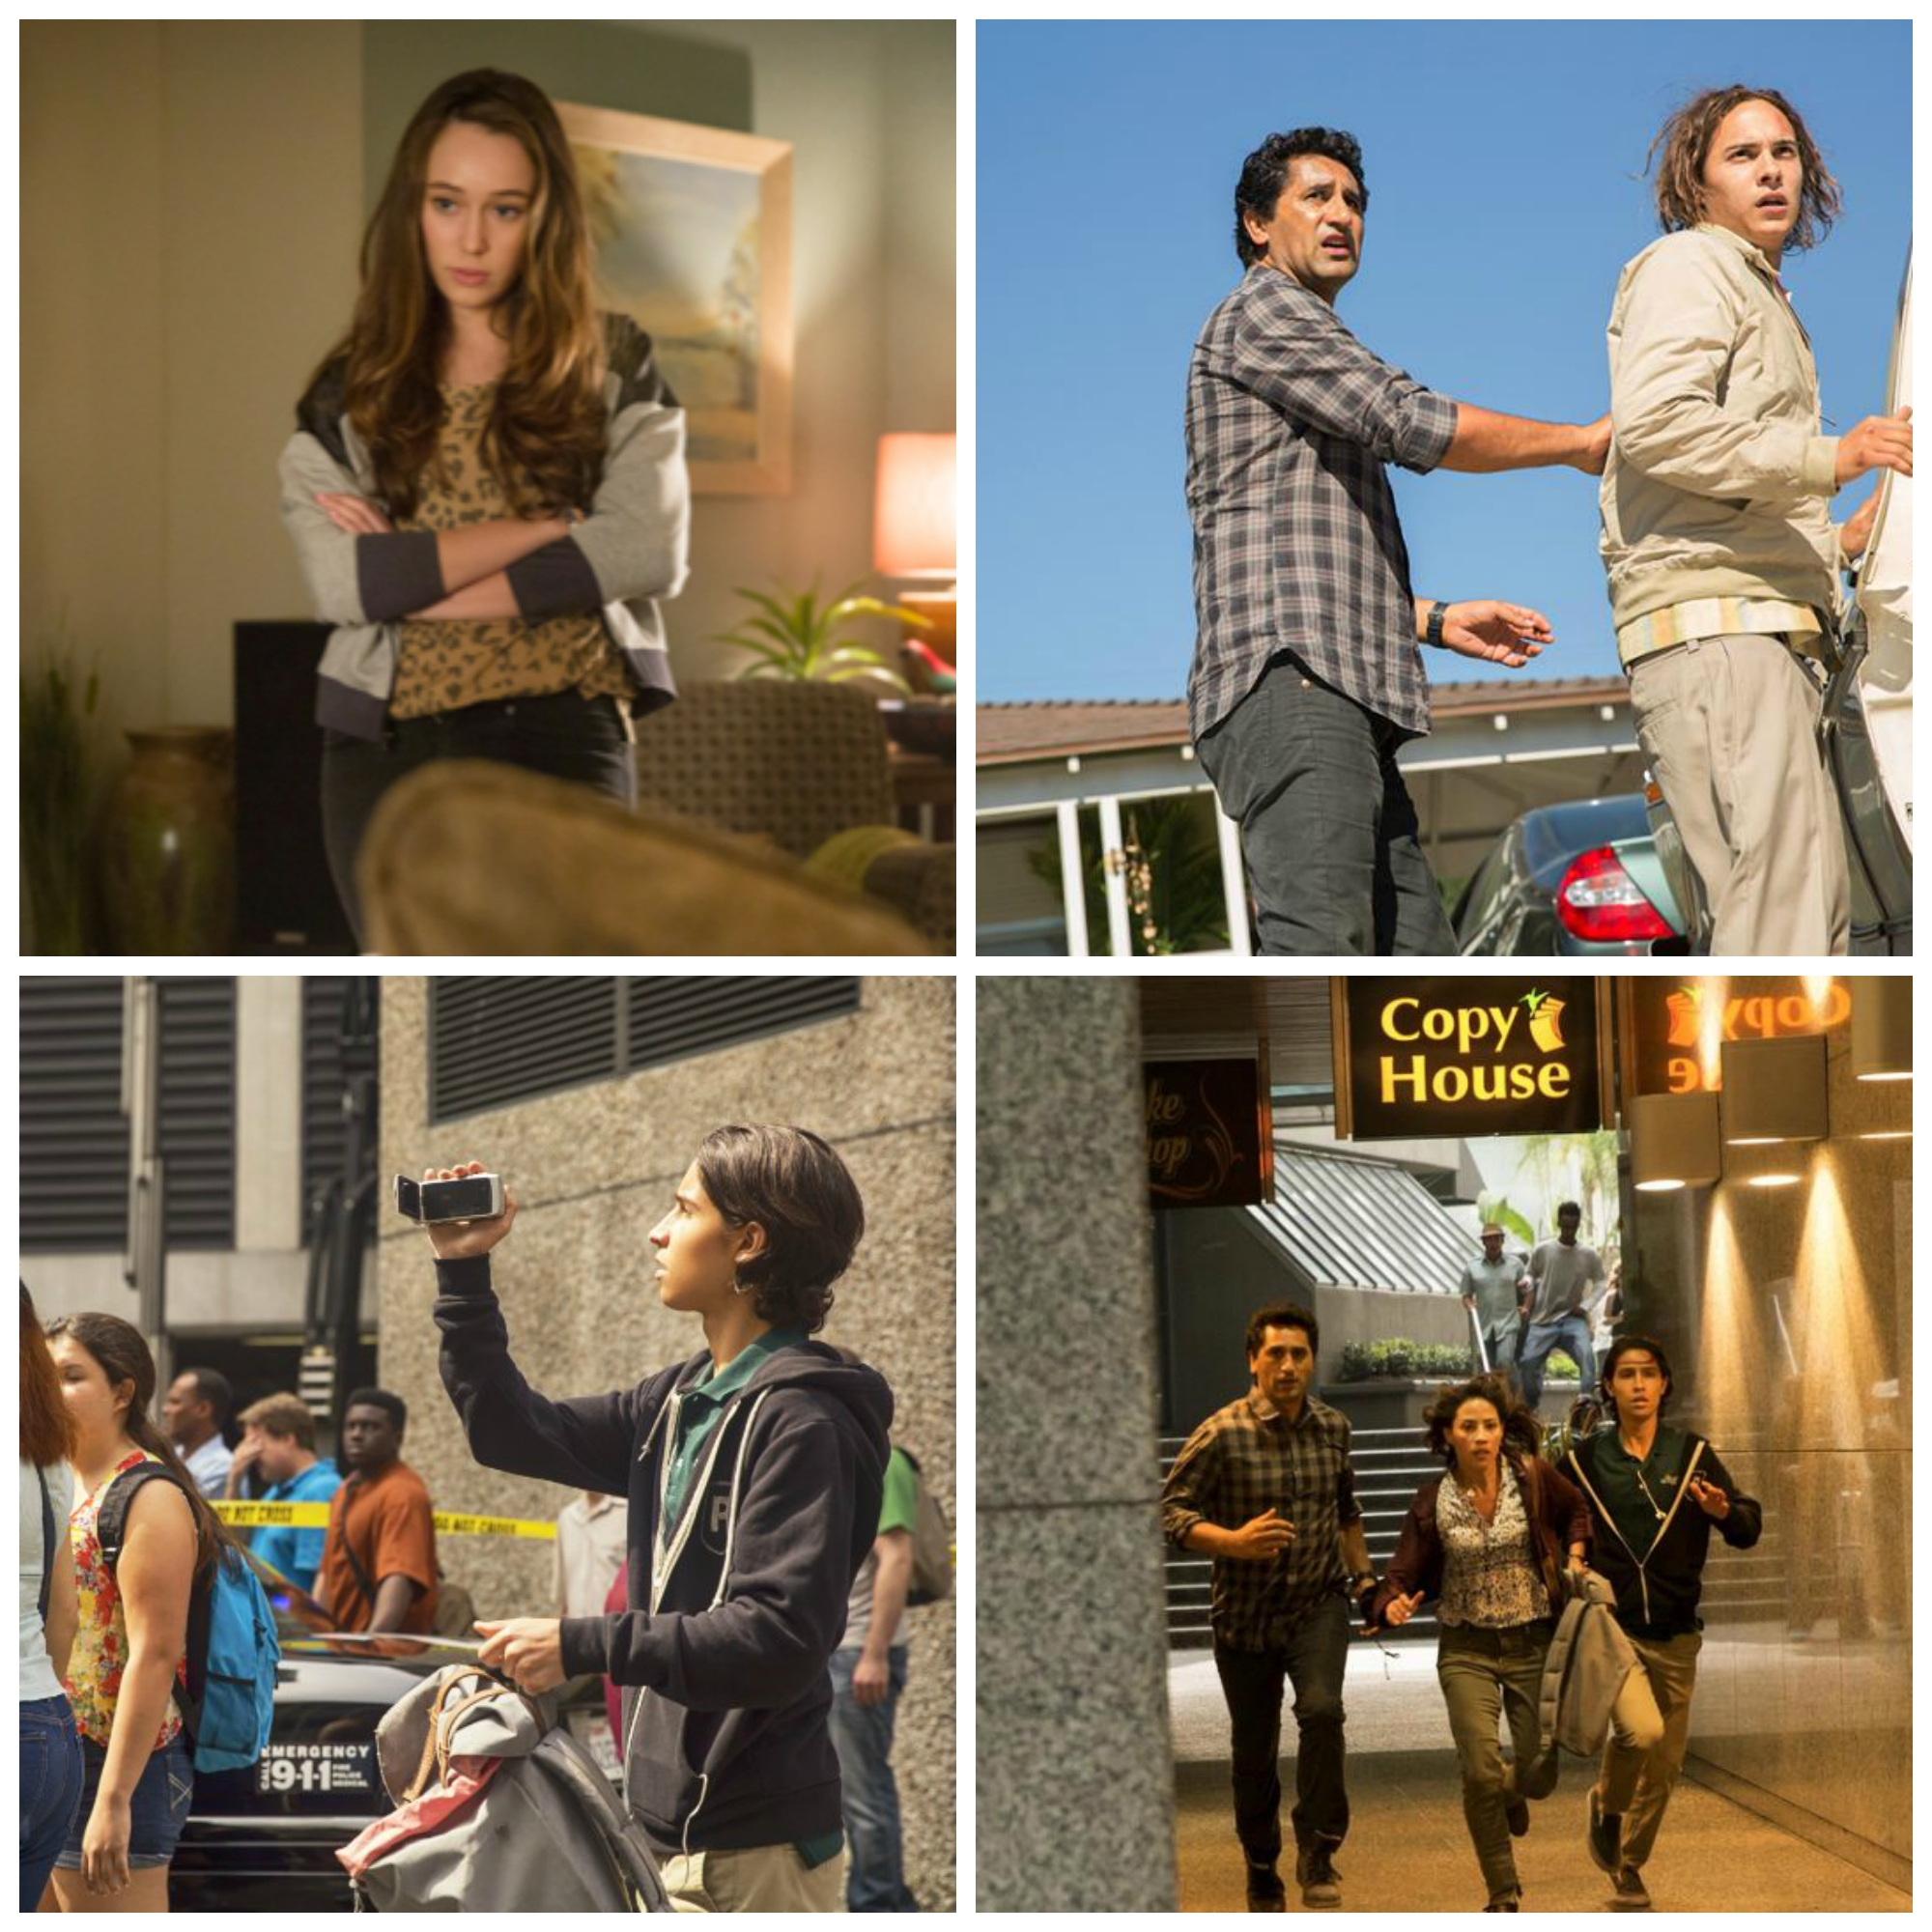 Episode 267: Fear the Walking Dead - S1E2 - So Close, Yet So Far